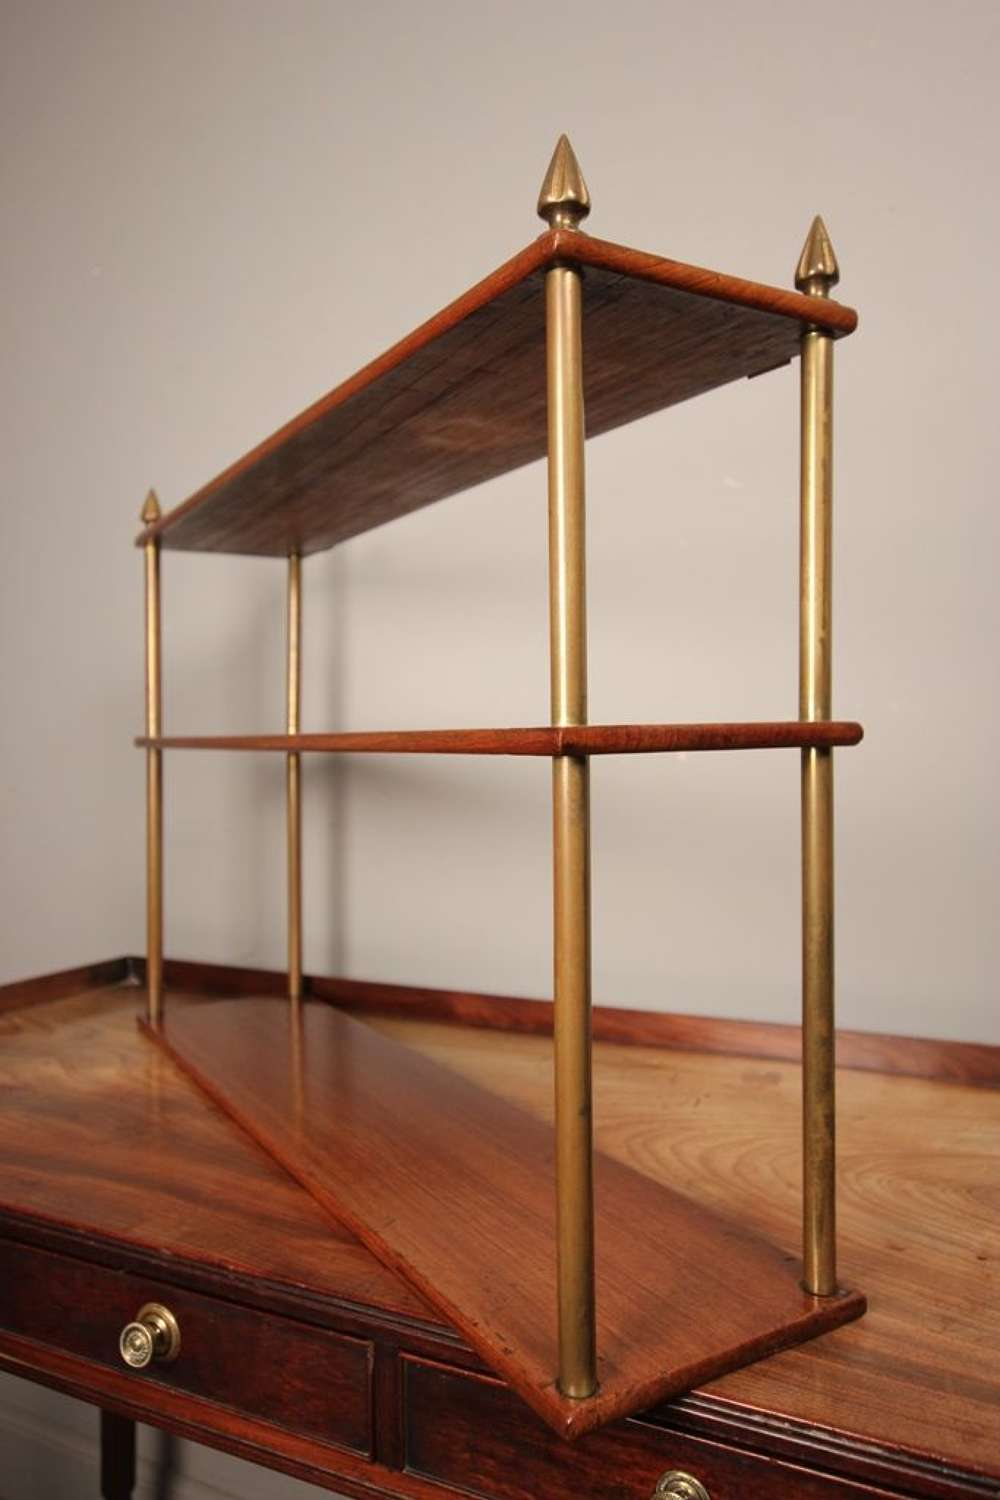 A set of Campaign Military Teak Shelves